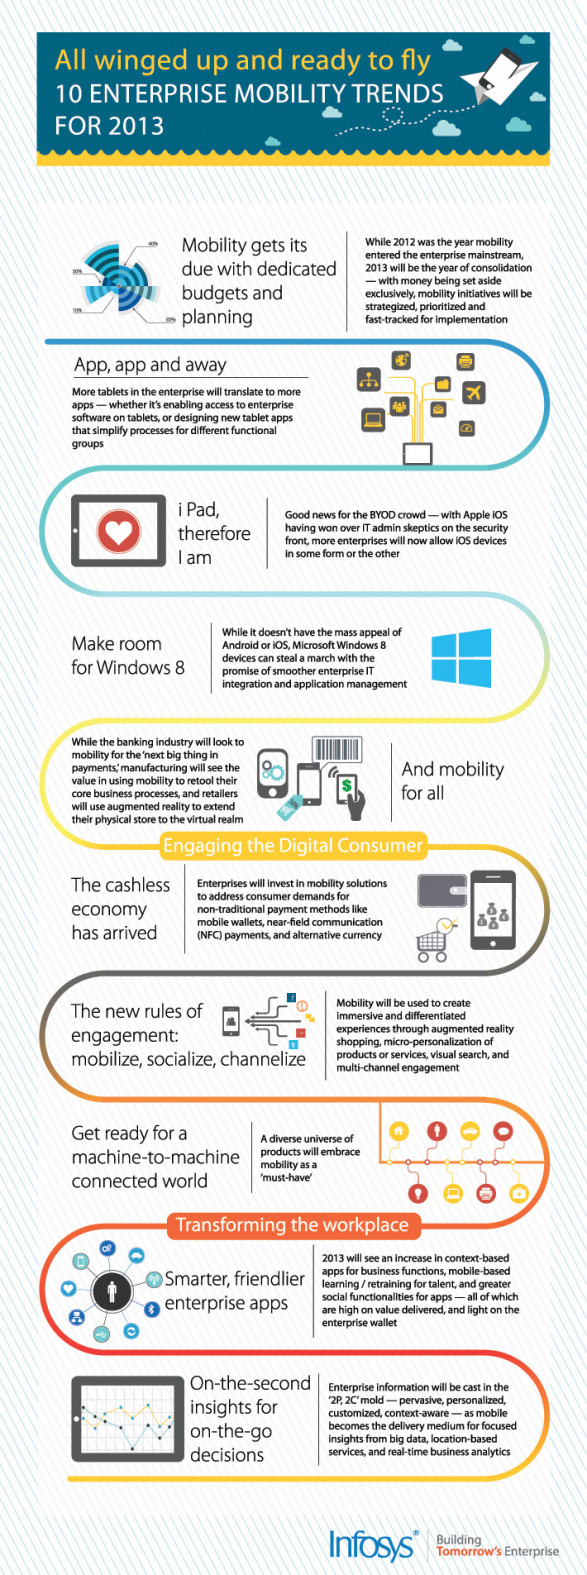 10 Enterprise Mobility Trends For 2013